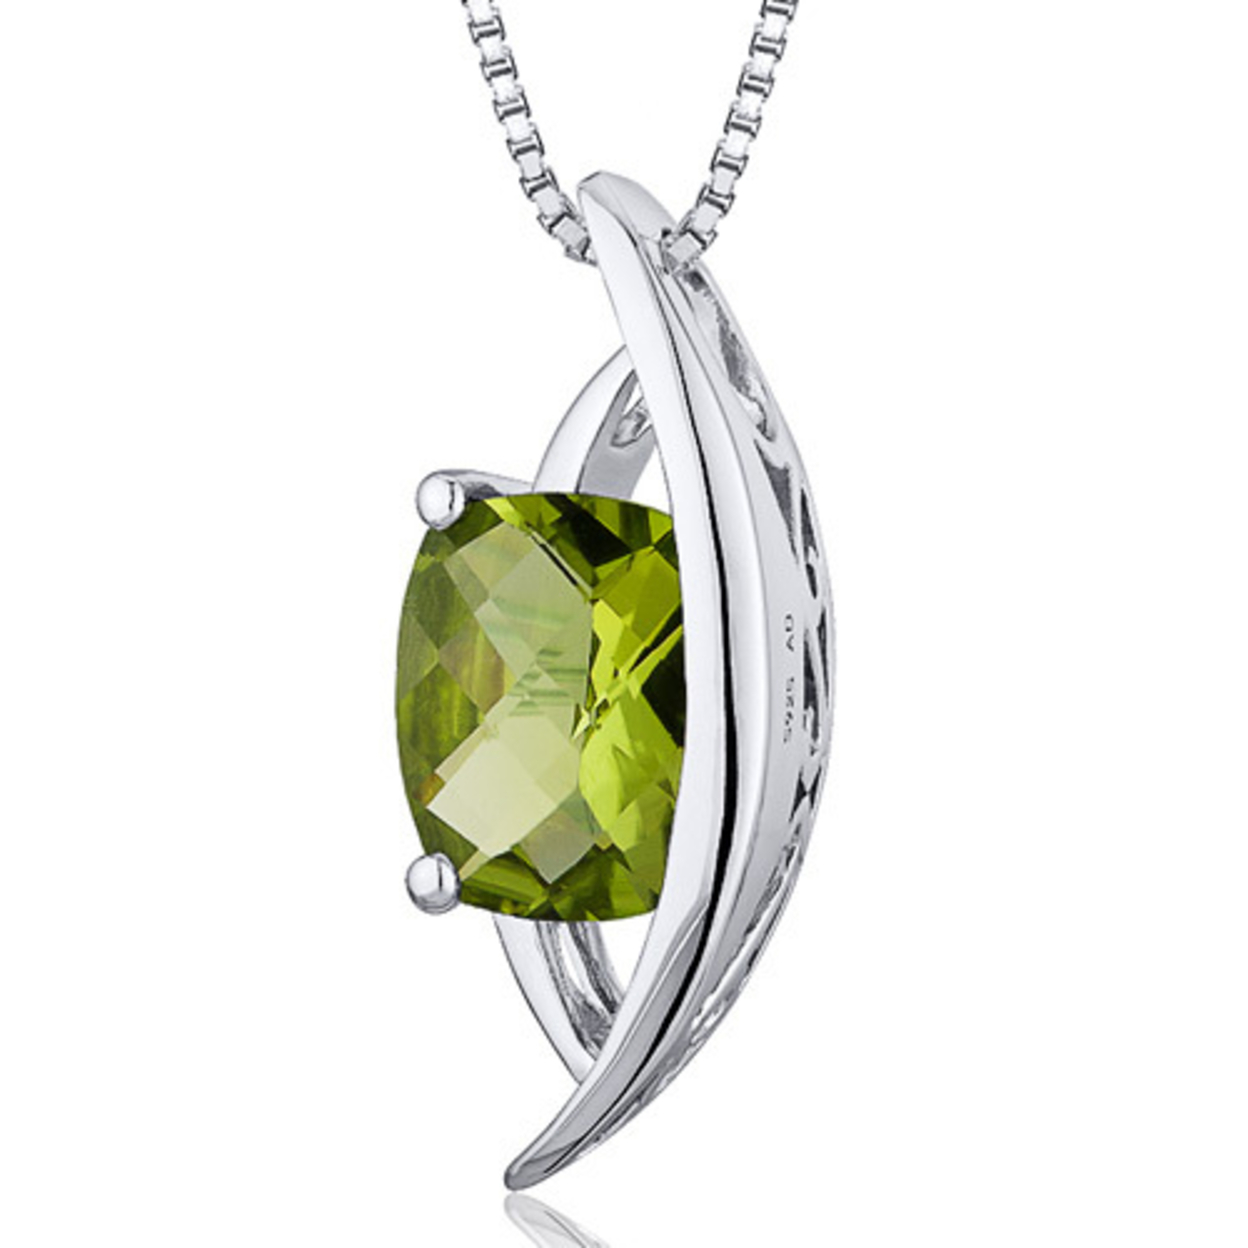 Oravo 1.50 Carat T.g.w. Radiant Checkerboard Cut Peridot Rhodium Over Sterling Silver Pendant, 18""